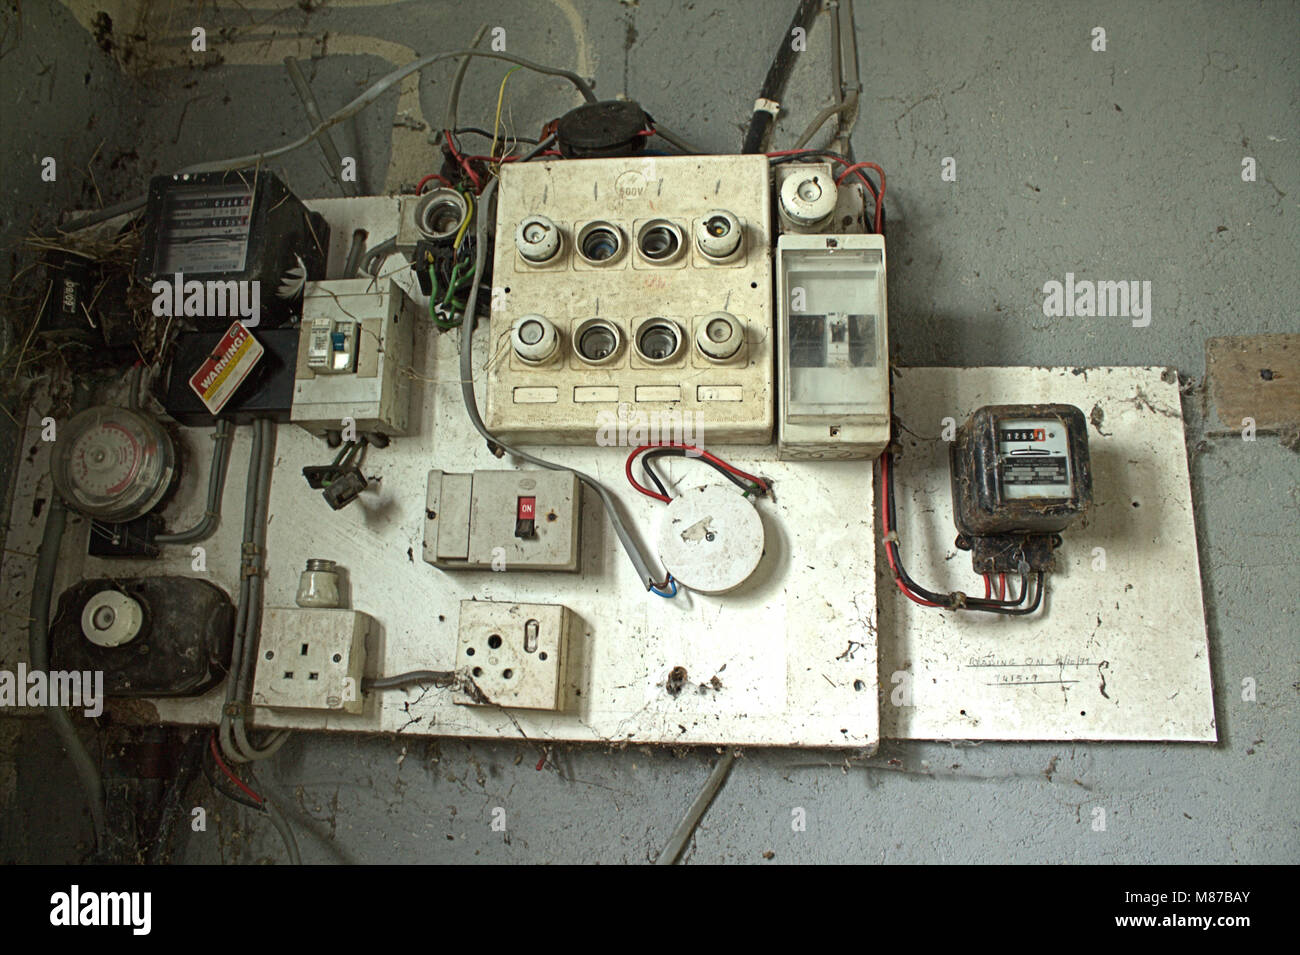 old fuse board and wiring which needs a total upgrade. - Stock Image